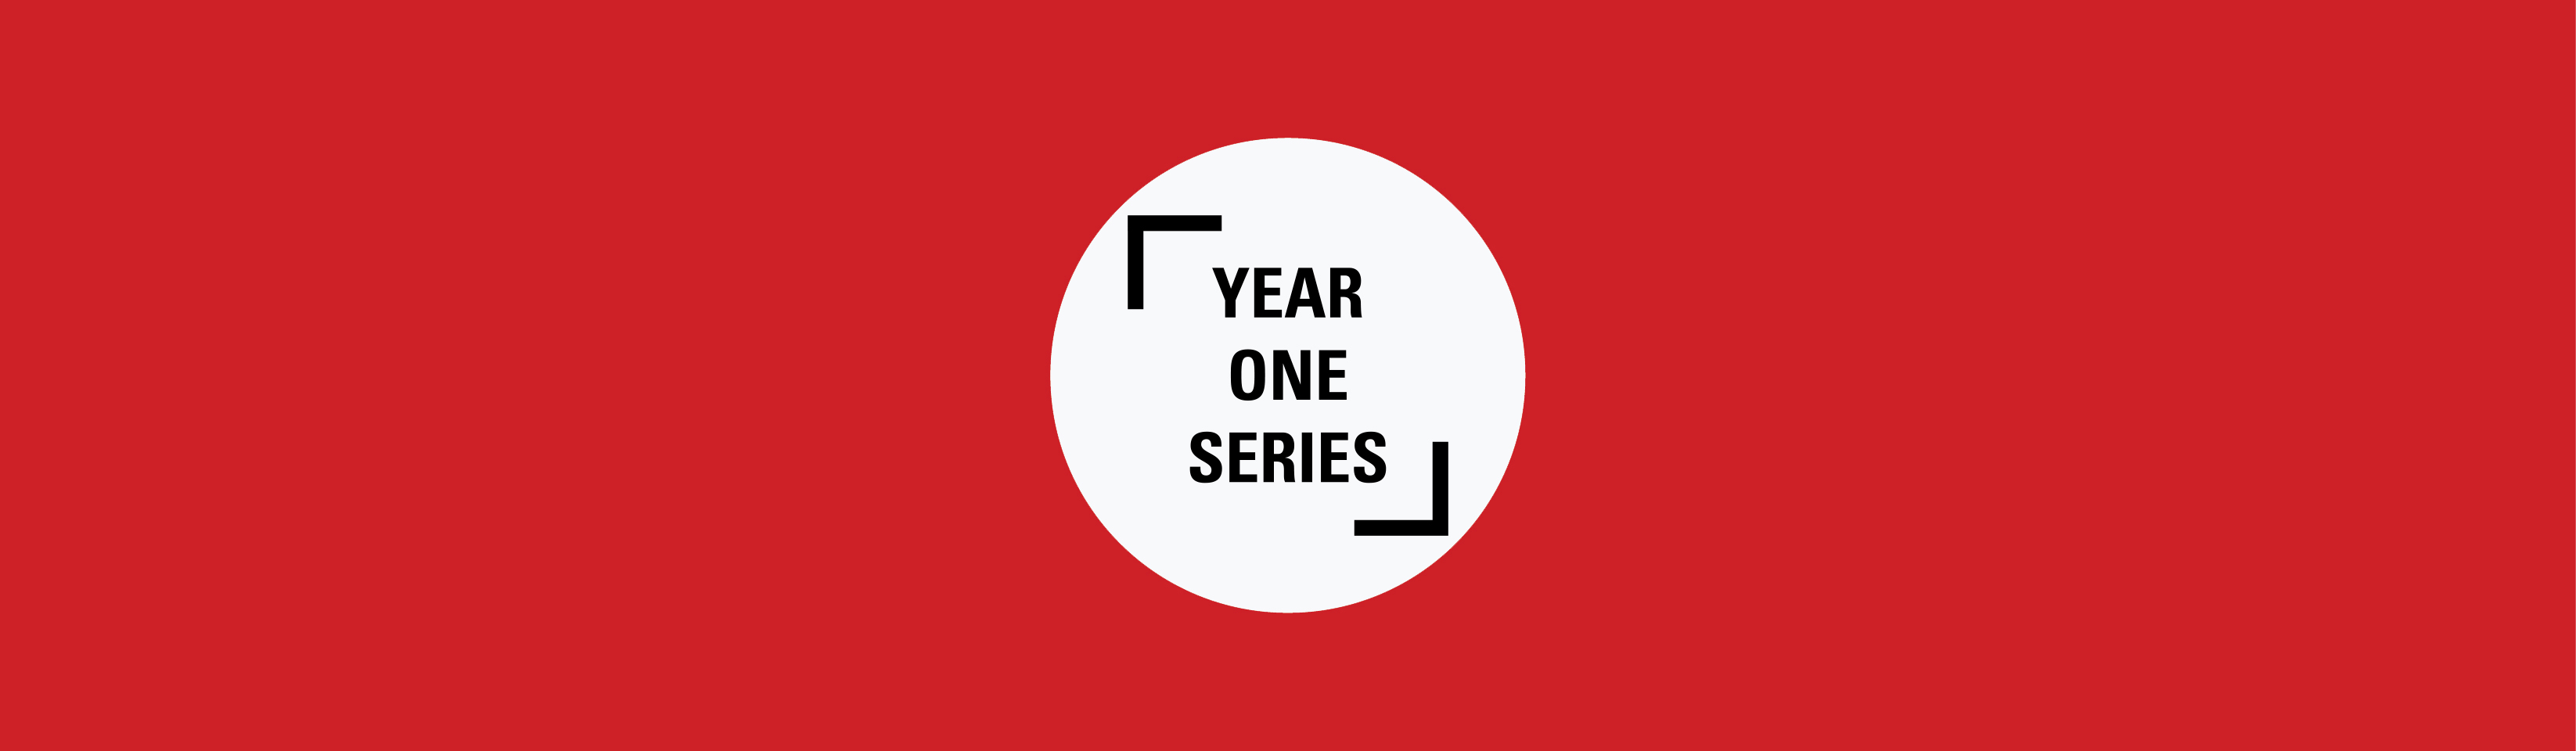 Year One Series